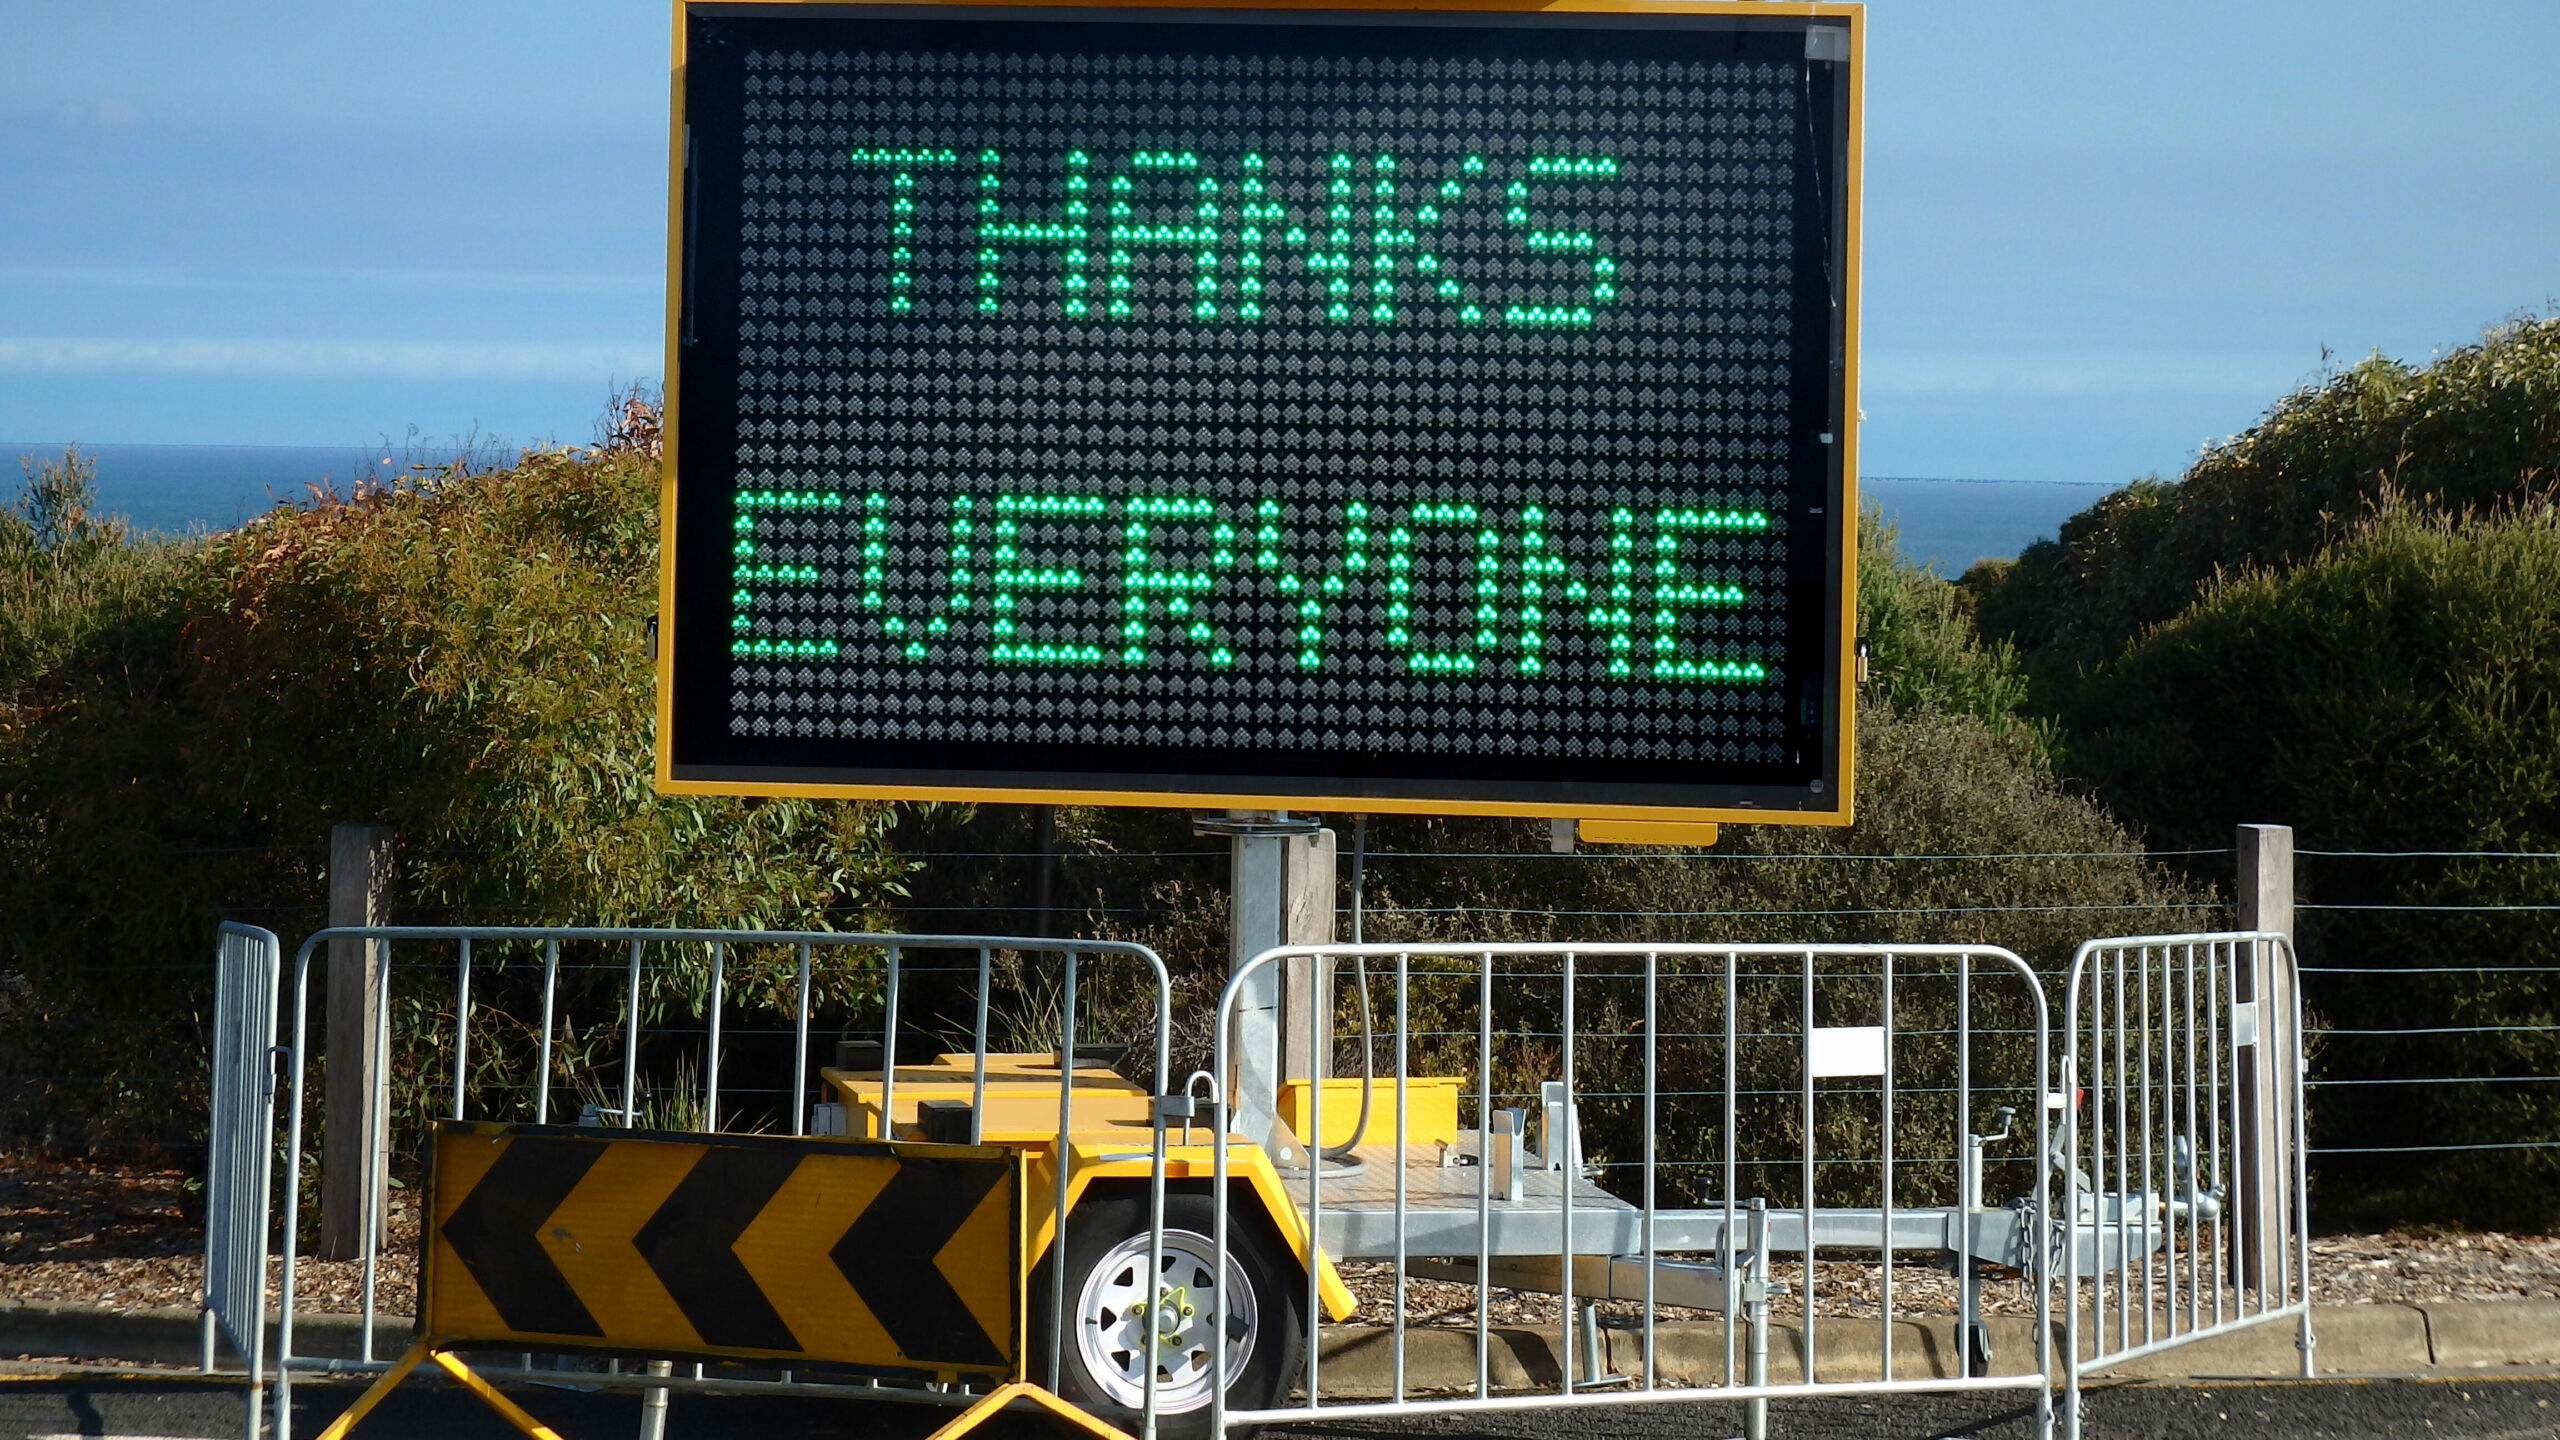 Portable variable message road sign